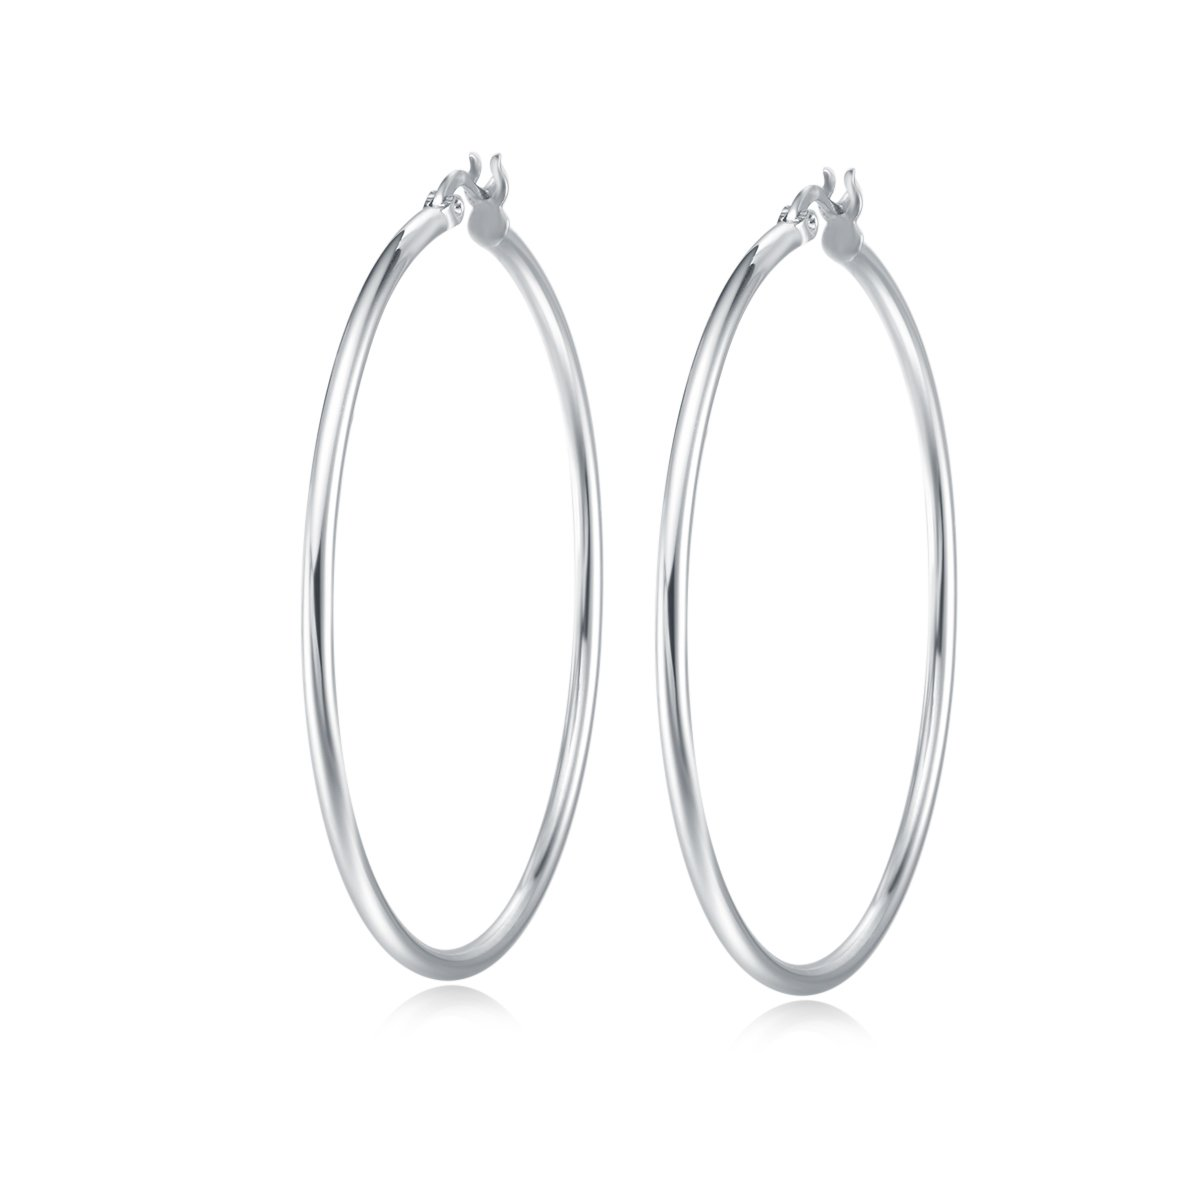 Carleen White Gold Plated 925 Sterling Silver High Polished Round-Tube Click-Top Large Big Hoop Earrings for Women Girls (Diameter 50mm)